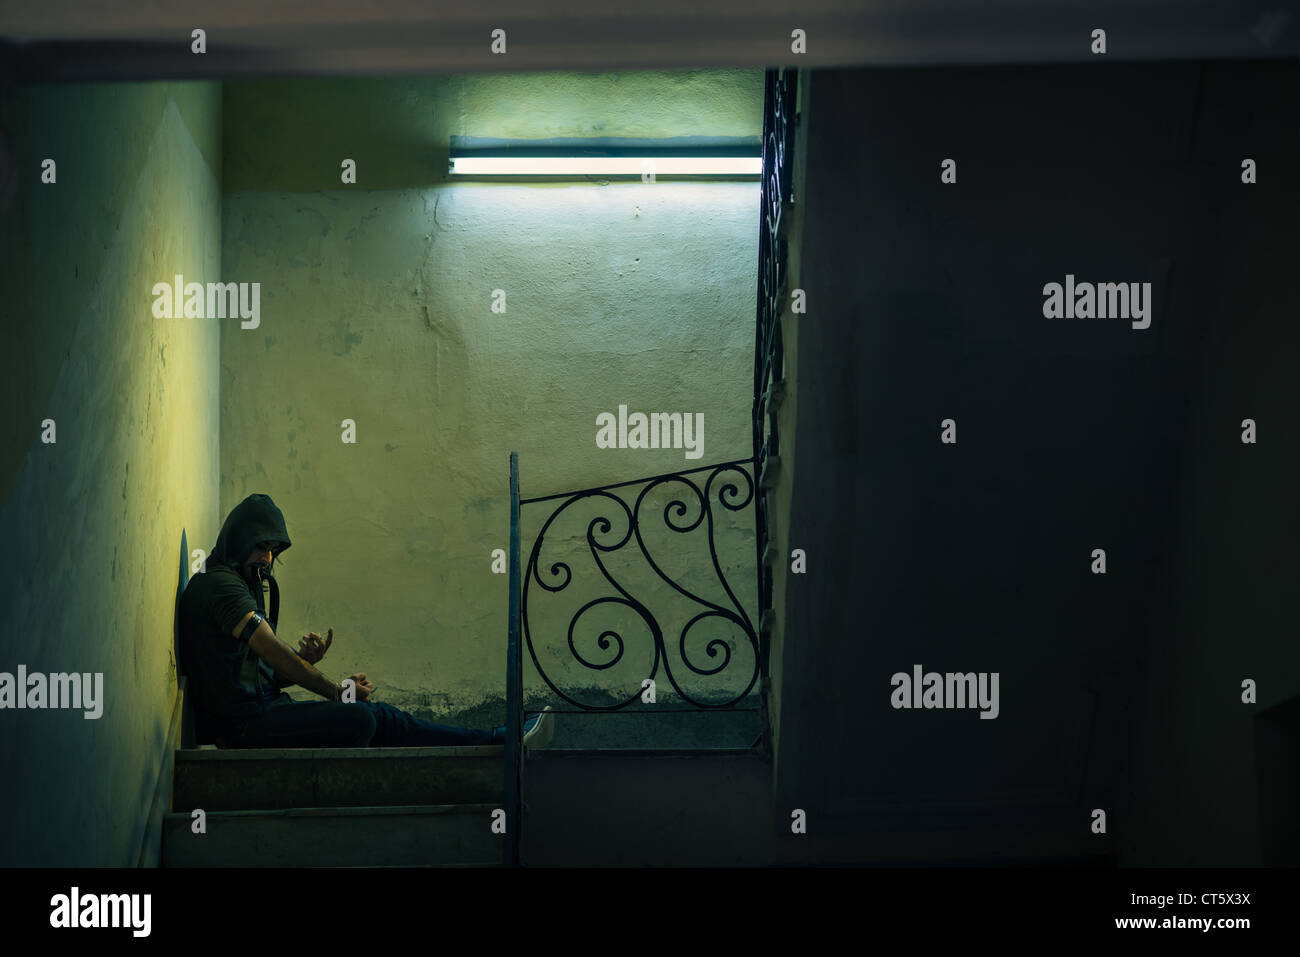 Social issues and drug abuse, young man injecting heroin and sitting on stairs. Copy space - Stock Image